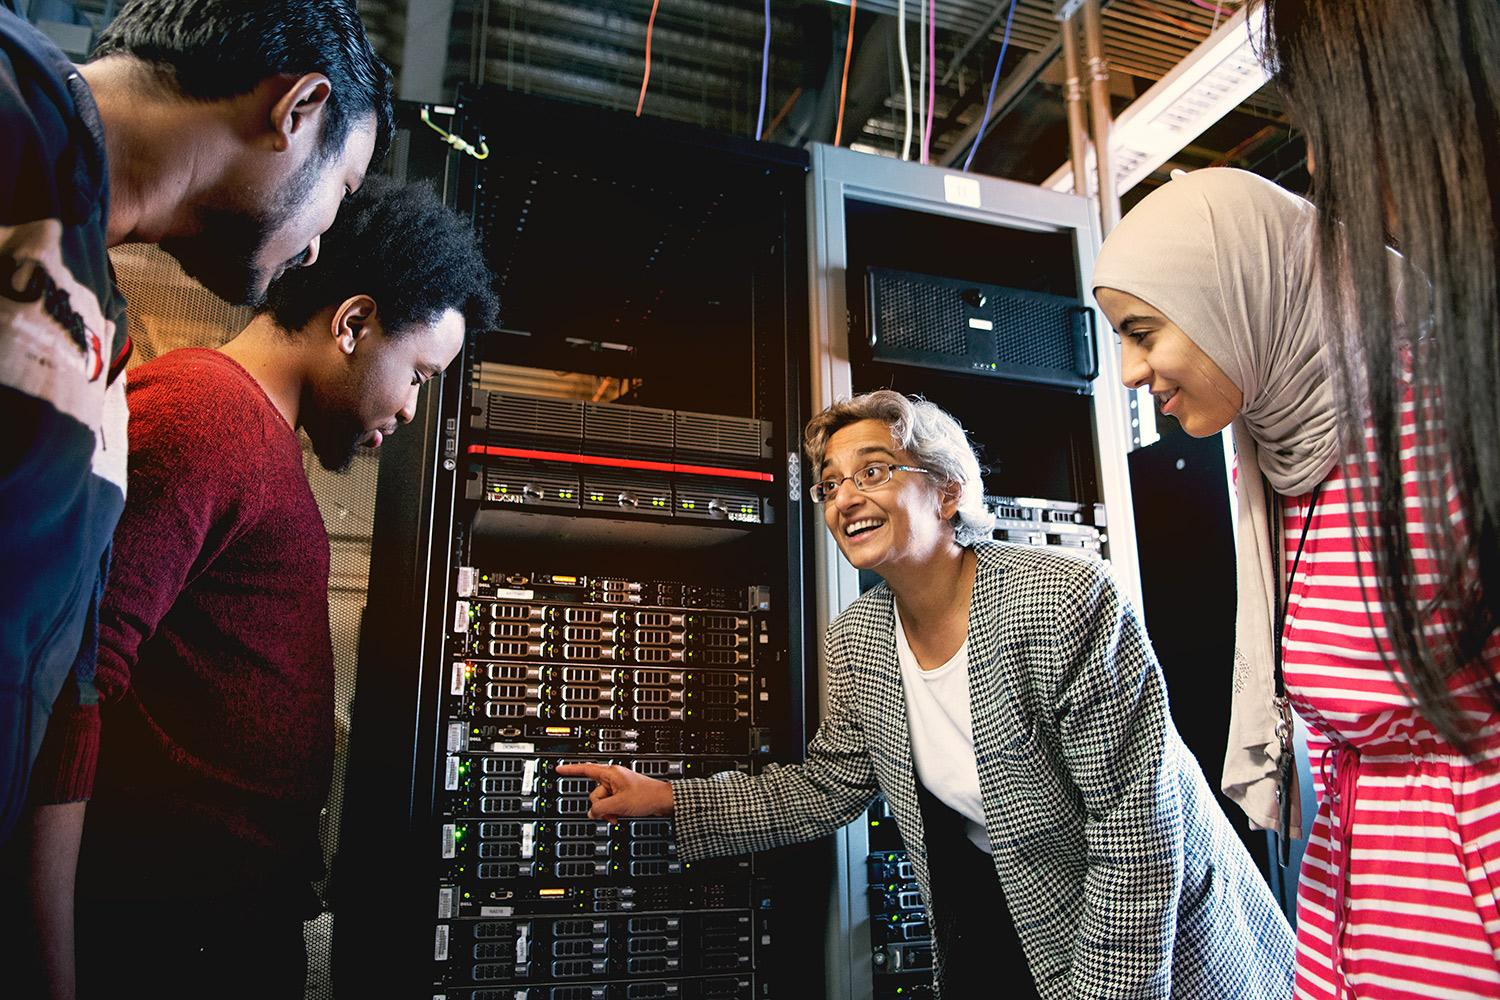 Malathi Veeraraghavan, a professor of electrical and computer engineering, is creating applications and protocols to ensure that communication to and from these state-of-the-art networks is as efficient as possible.